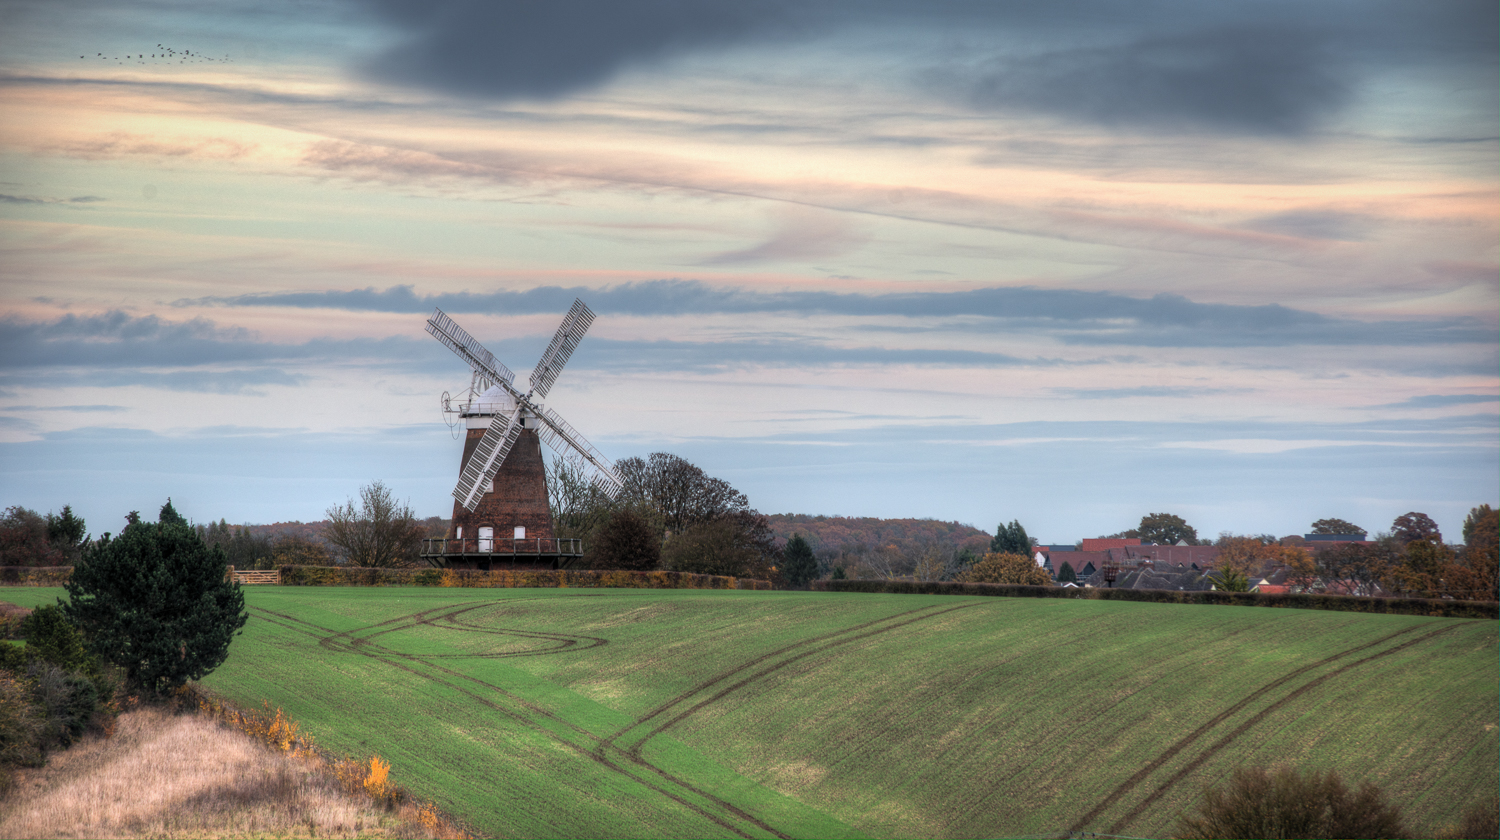 Autumn at John Webbs Windmill, Thaxted